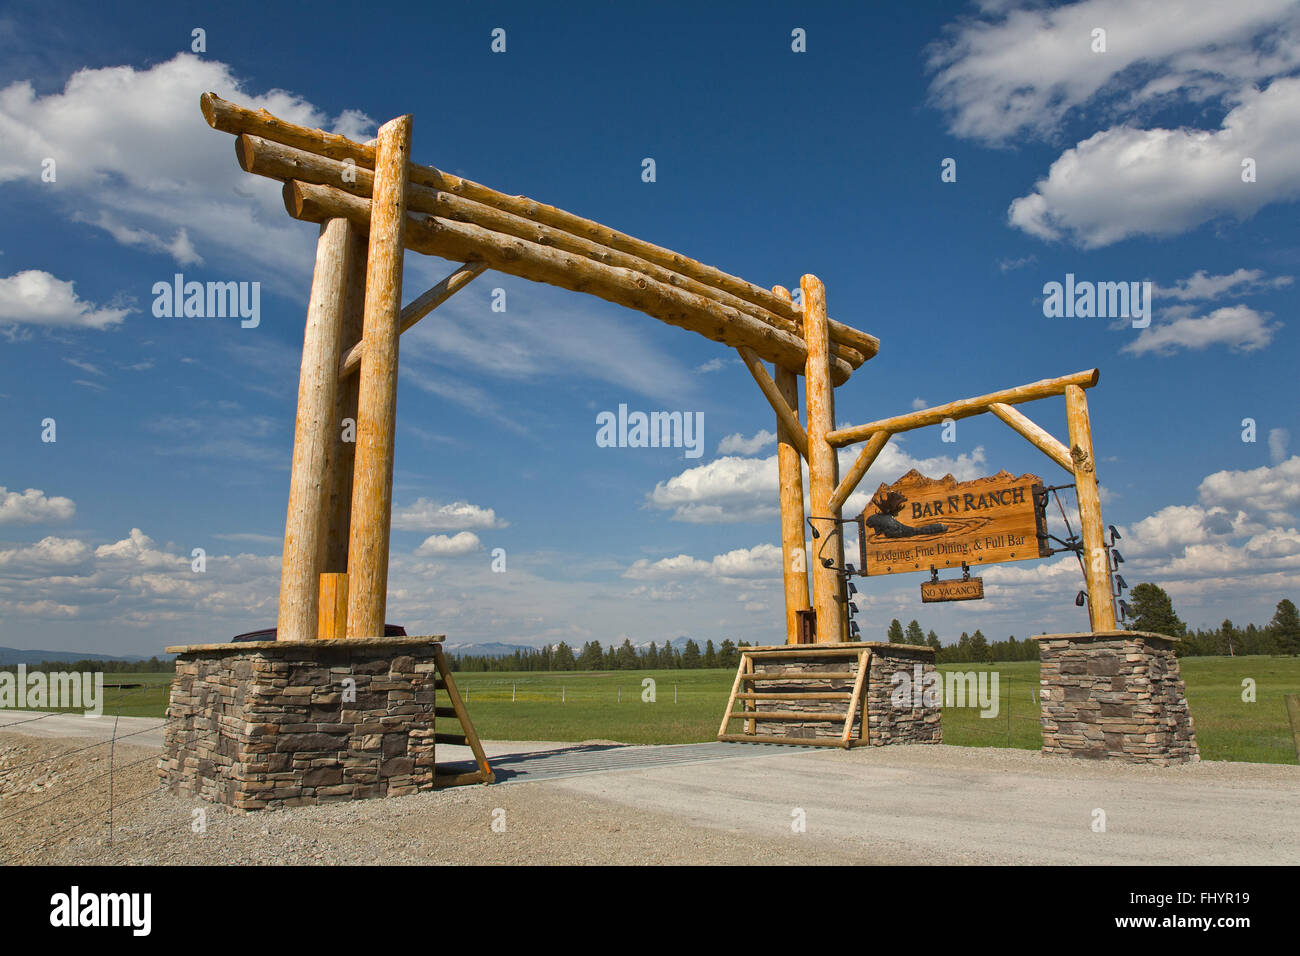 Entry sign to BAR N RANCH which is a guest ranch with fine food and accommodations - WEST YELLOWSTONE, MONTANA - Stock Image